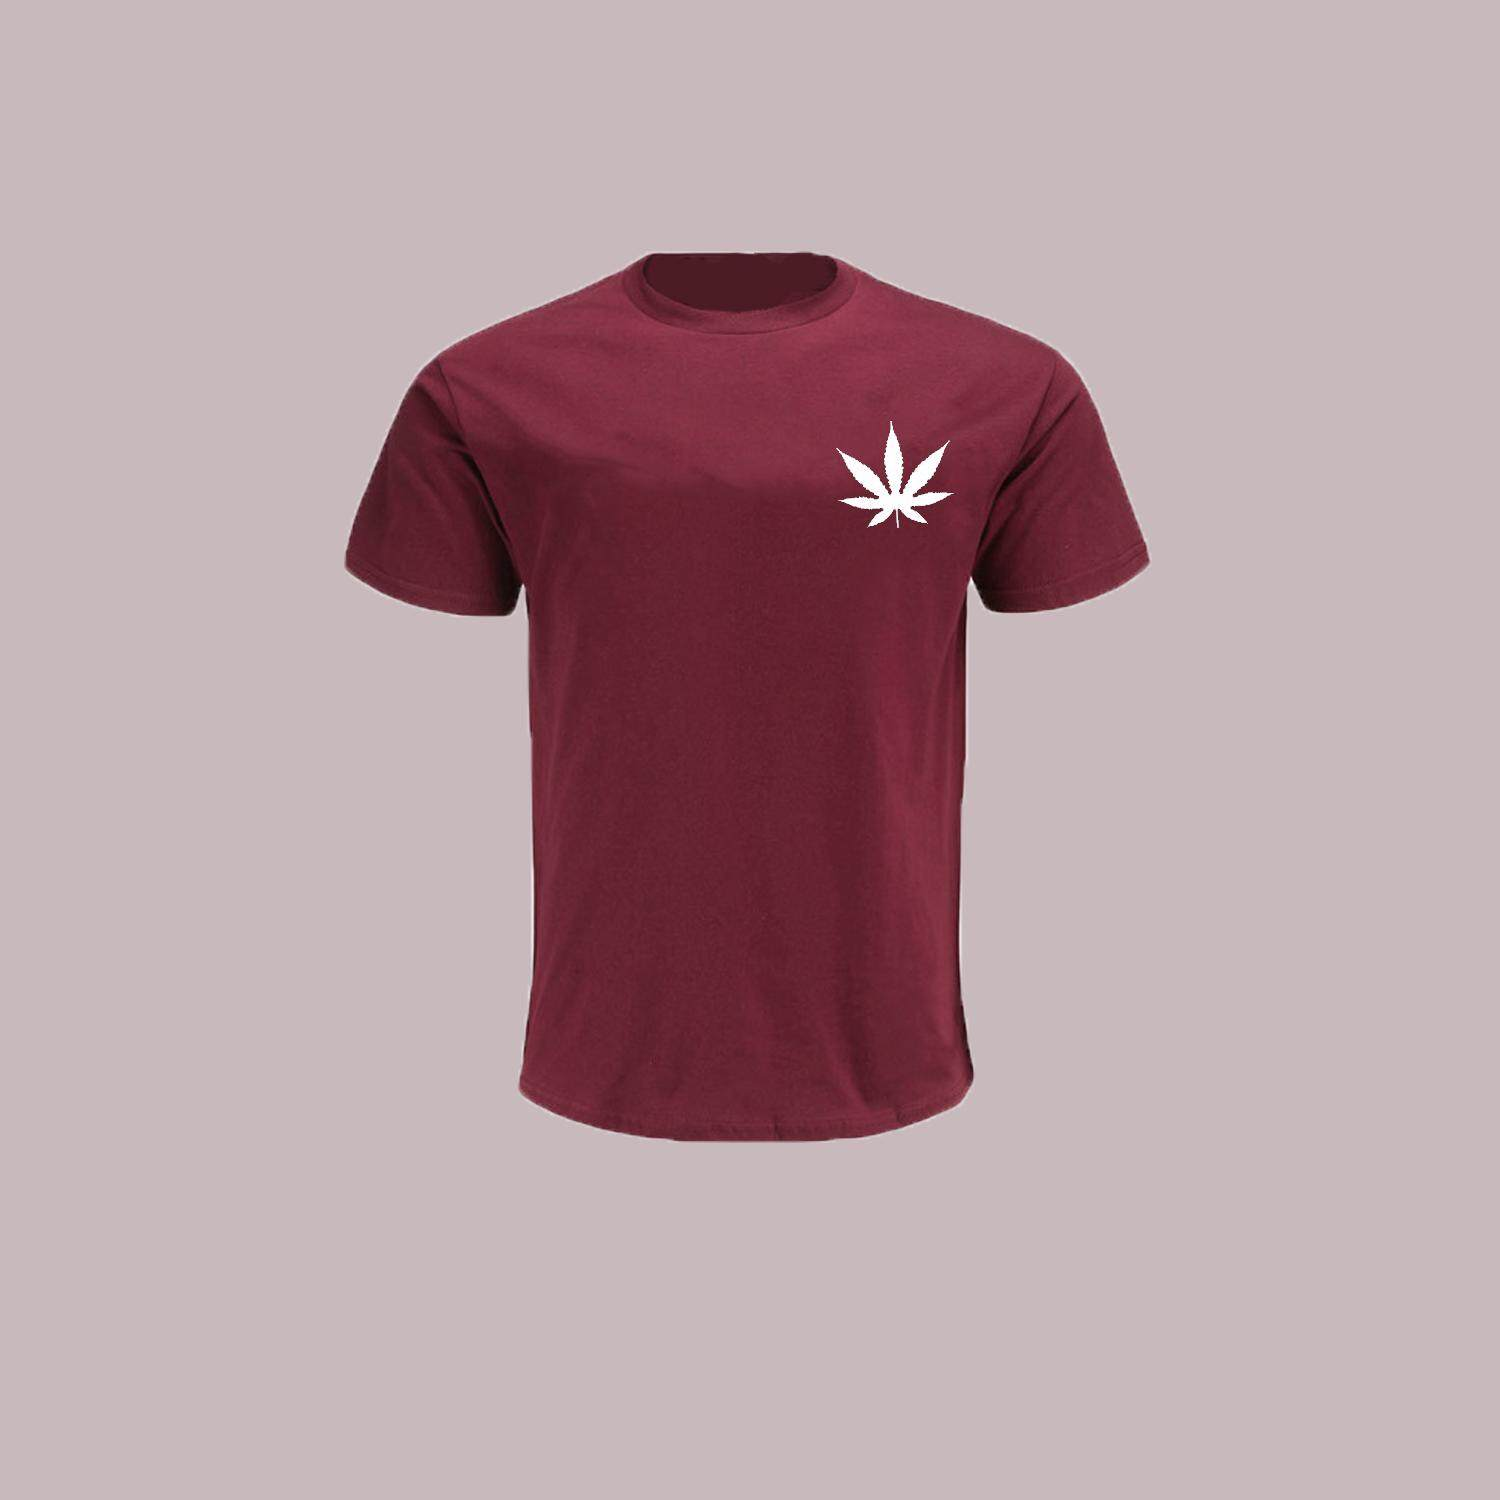 Popular T Shirts For Men The Best Prices In Malaysia Tendencies Tshirt Lazy Hitam Xxl